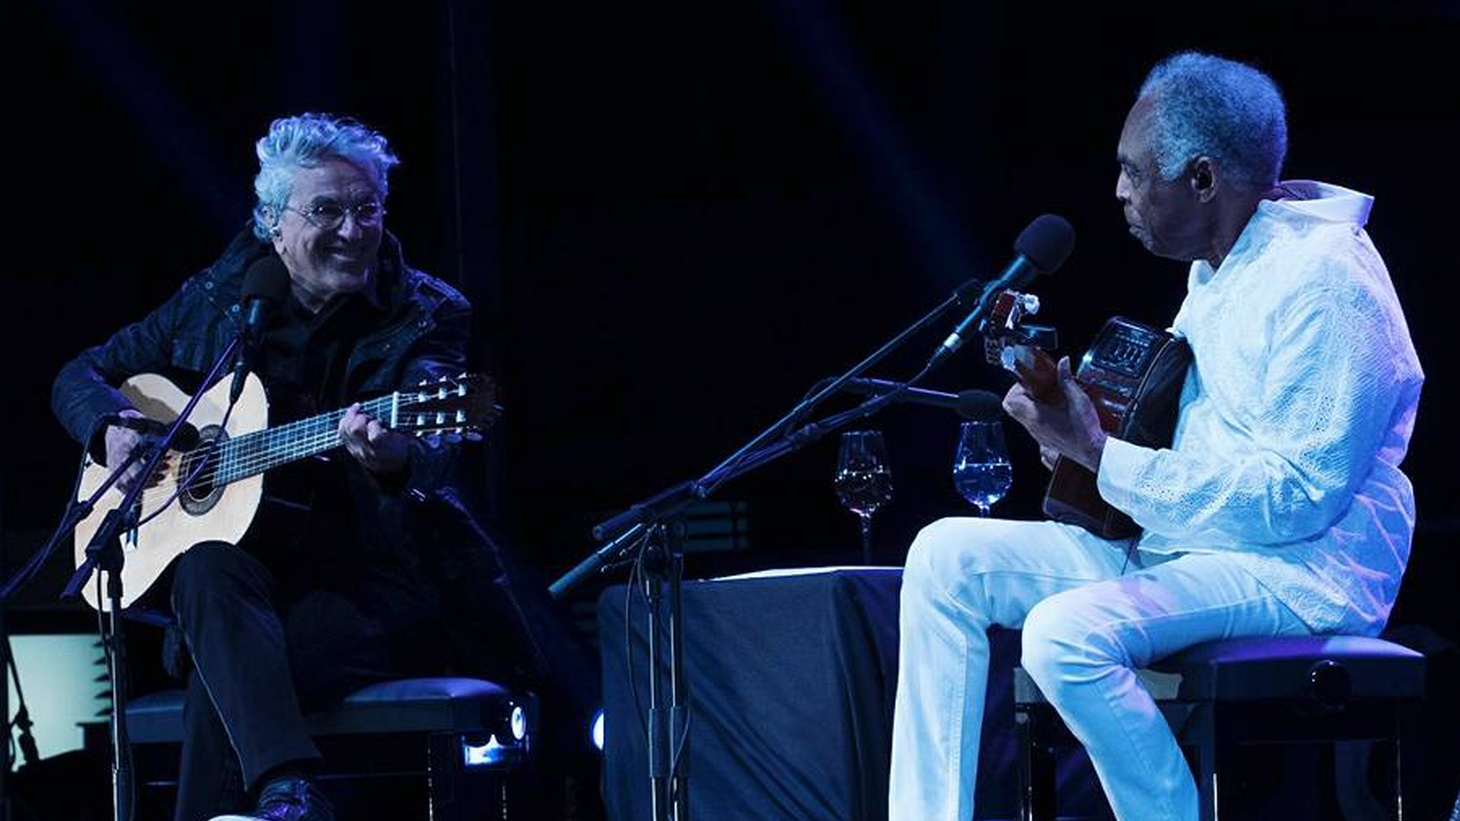 The timeless beauty of two old friends -- who have collaborated since the mid 60's -- is palpable when Caetano Veloso and Gilberto Gil take their guitars to the stage.